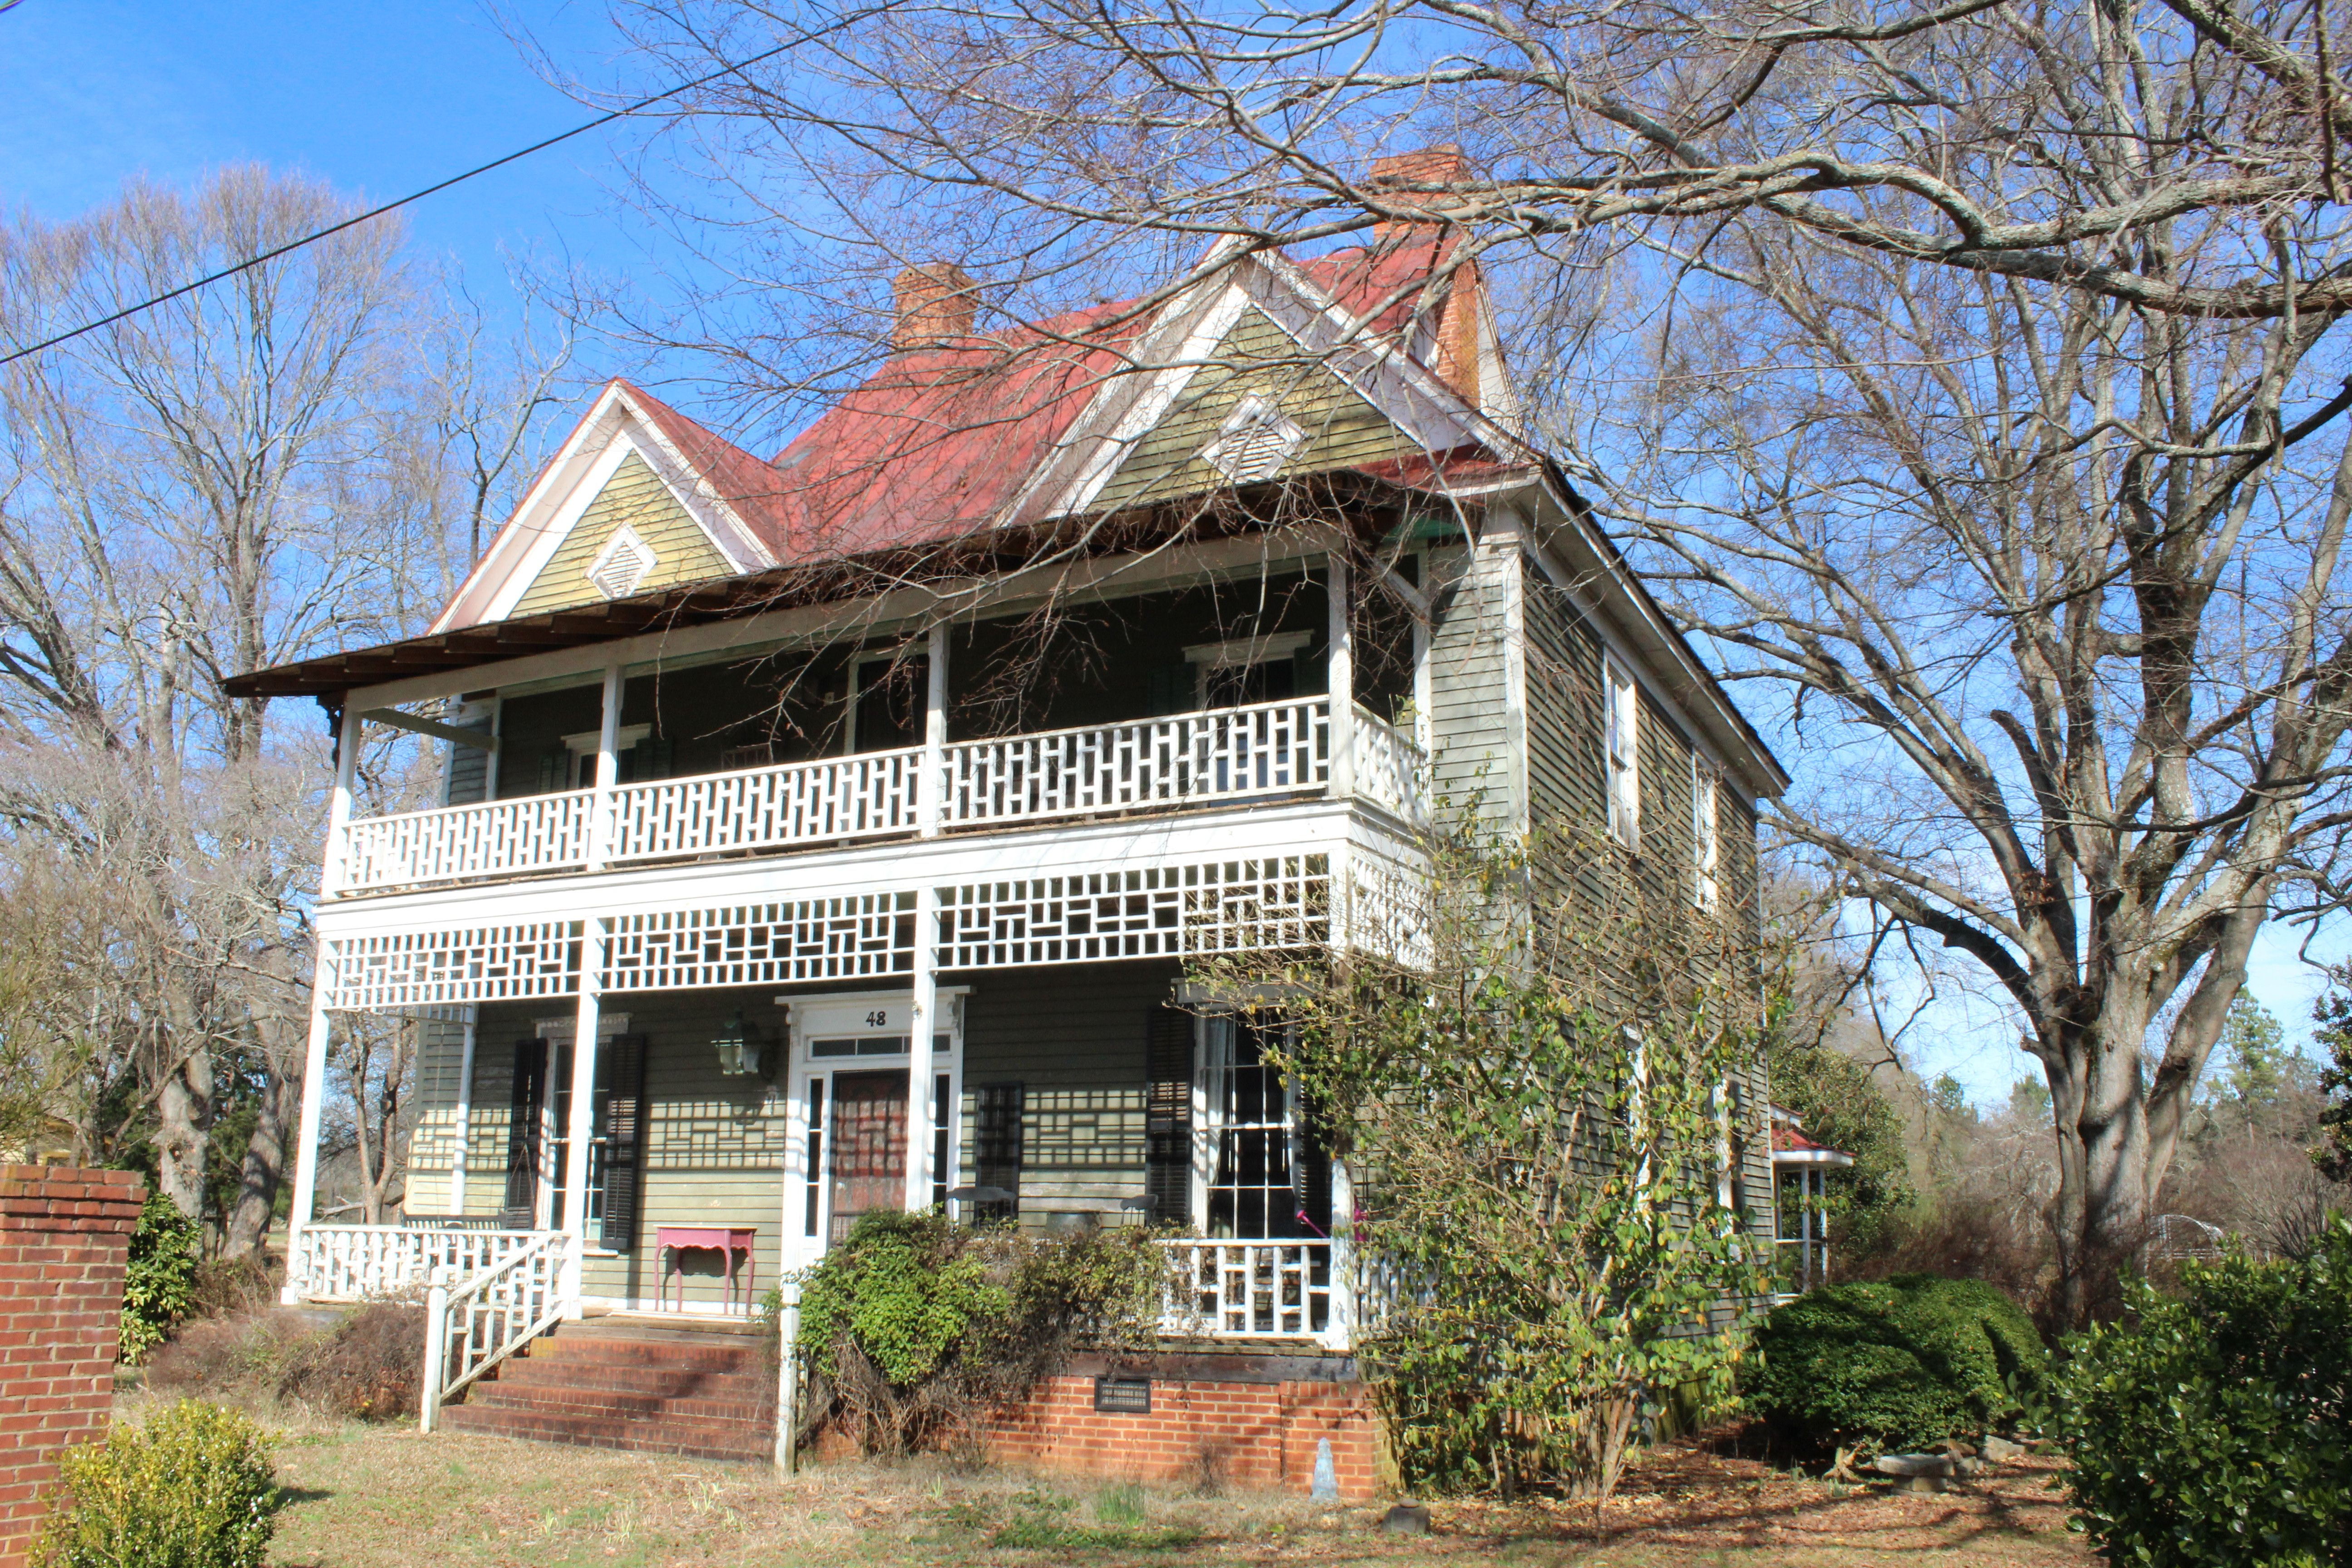 Pretty Old Southern Home In Maysville Oldhouses Architecture